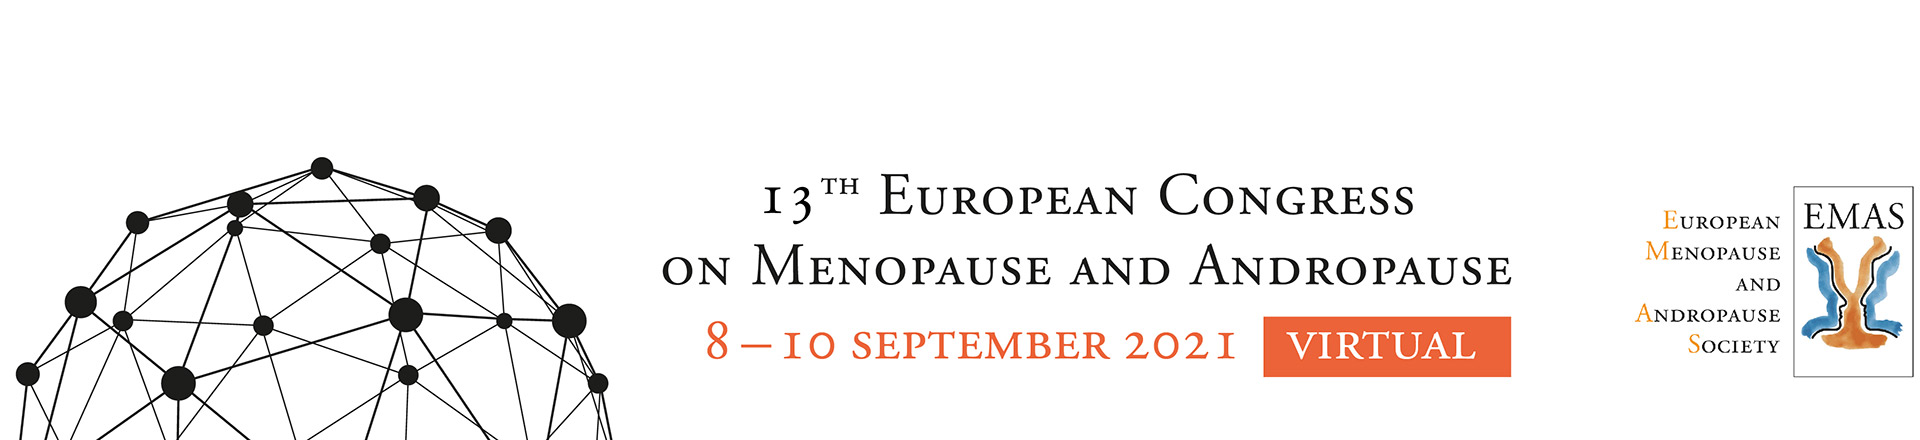 13th European Congress on Menopause and Andropause